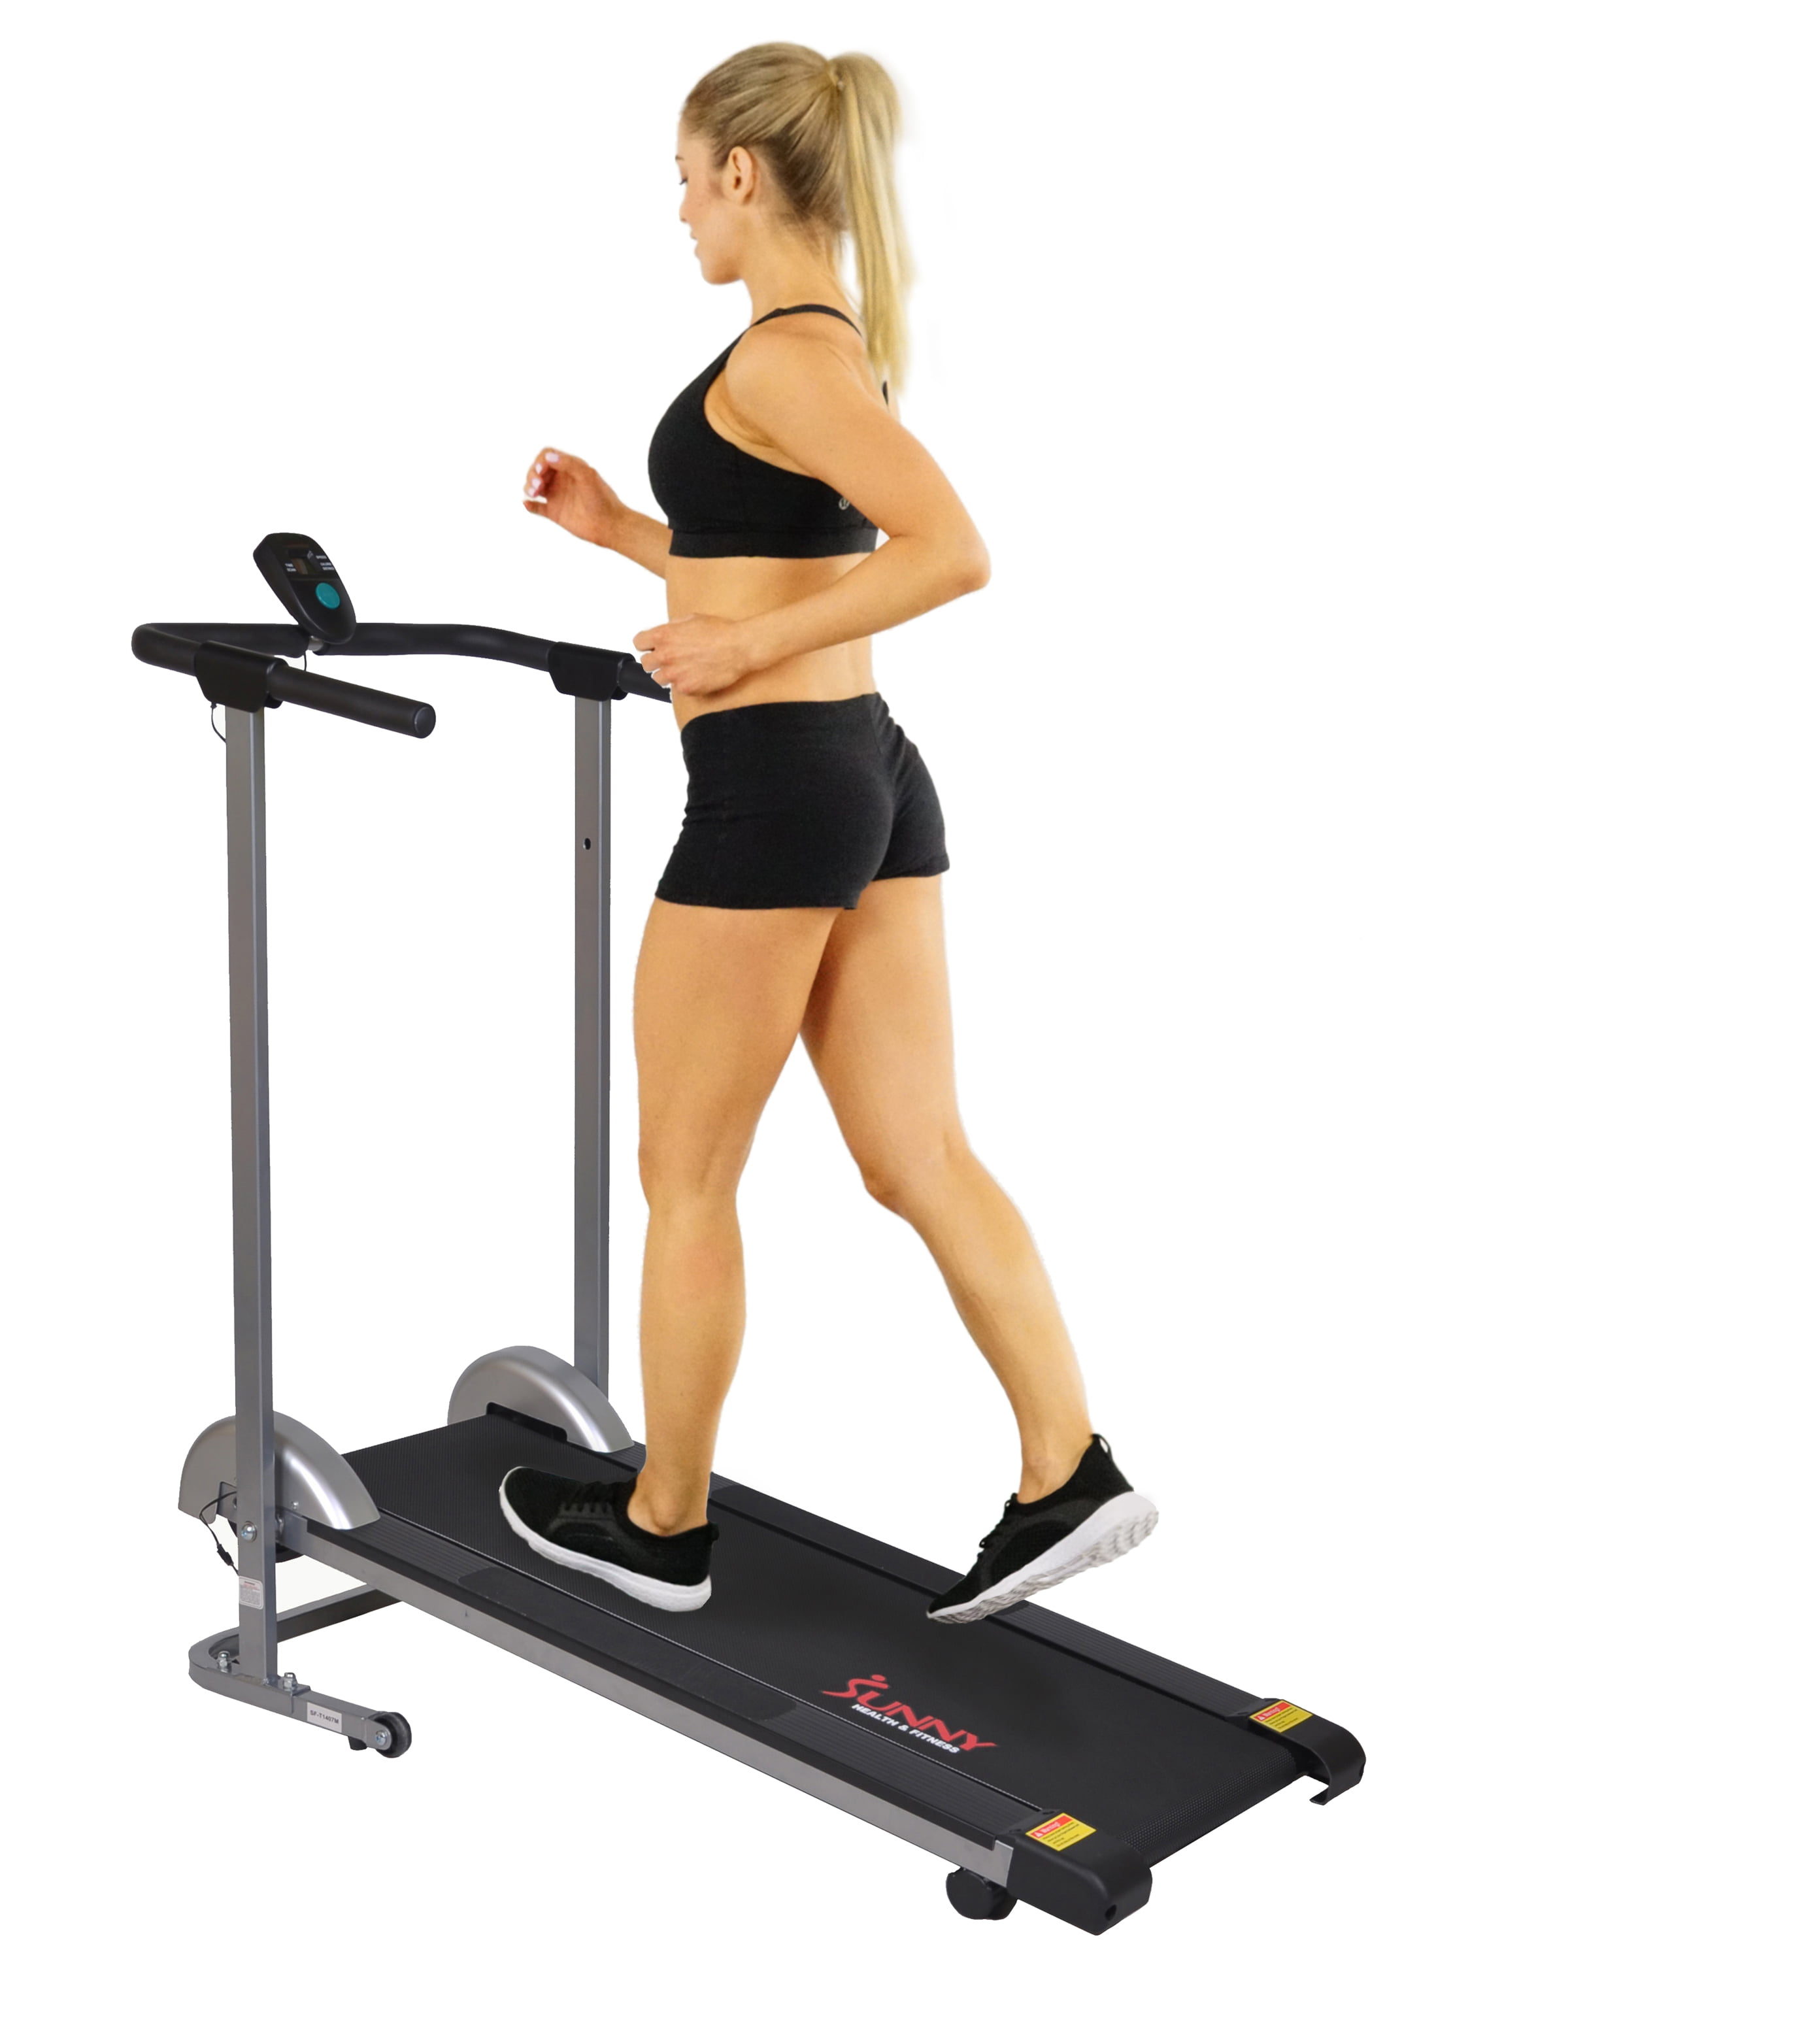 Marcy bike manuals ebook array marcy home gym exercise manual 1600 ebook rh marcy home gym exercise manual 1600 fandeluxe Choice Image